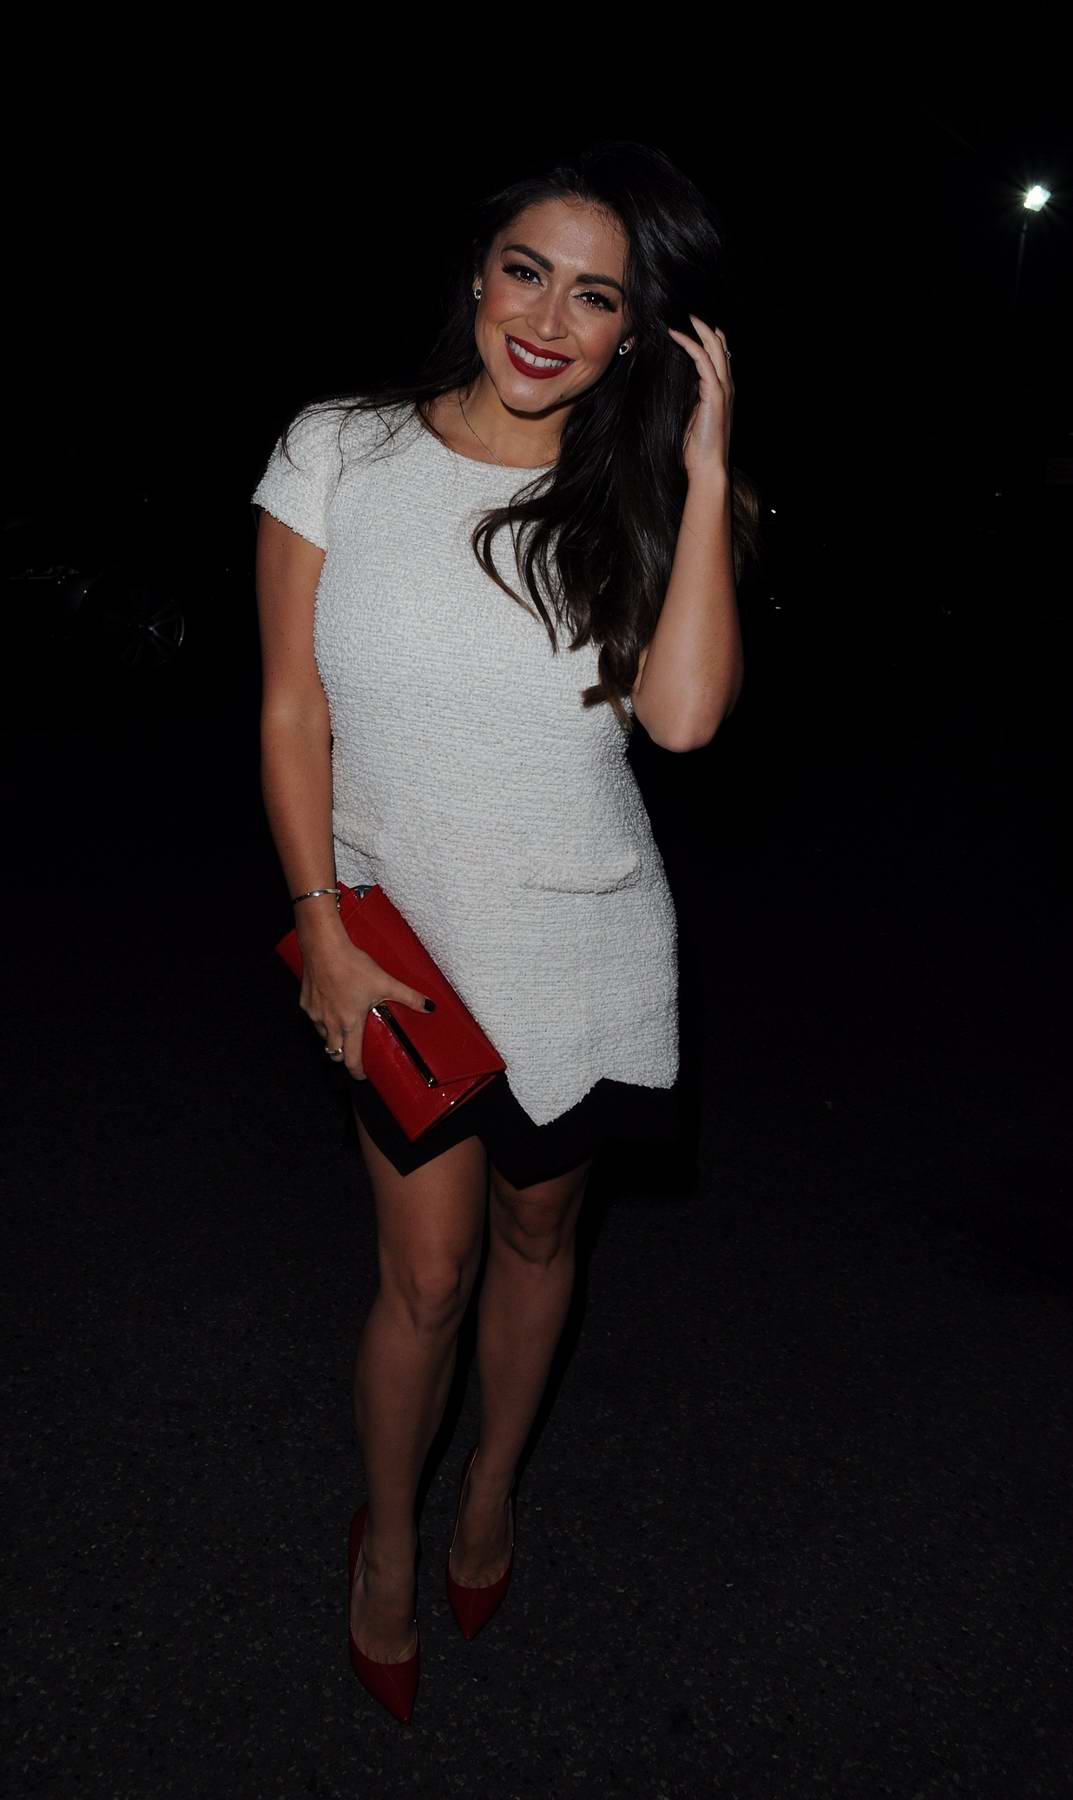 Casey Batchelor and Jemma Lucy arrives at the Elbrook Gala Ball at Chak 89 in Mitcham, UK